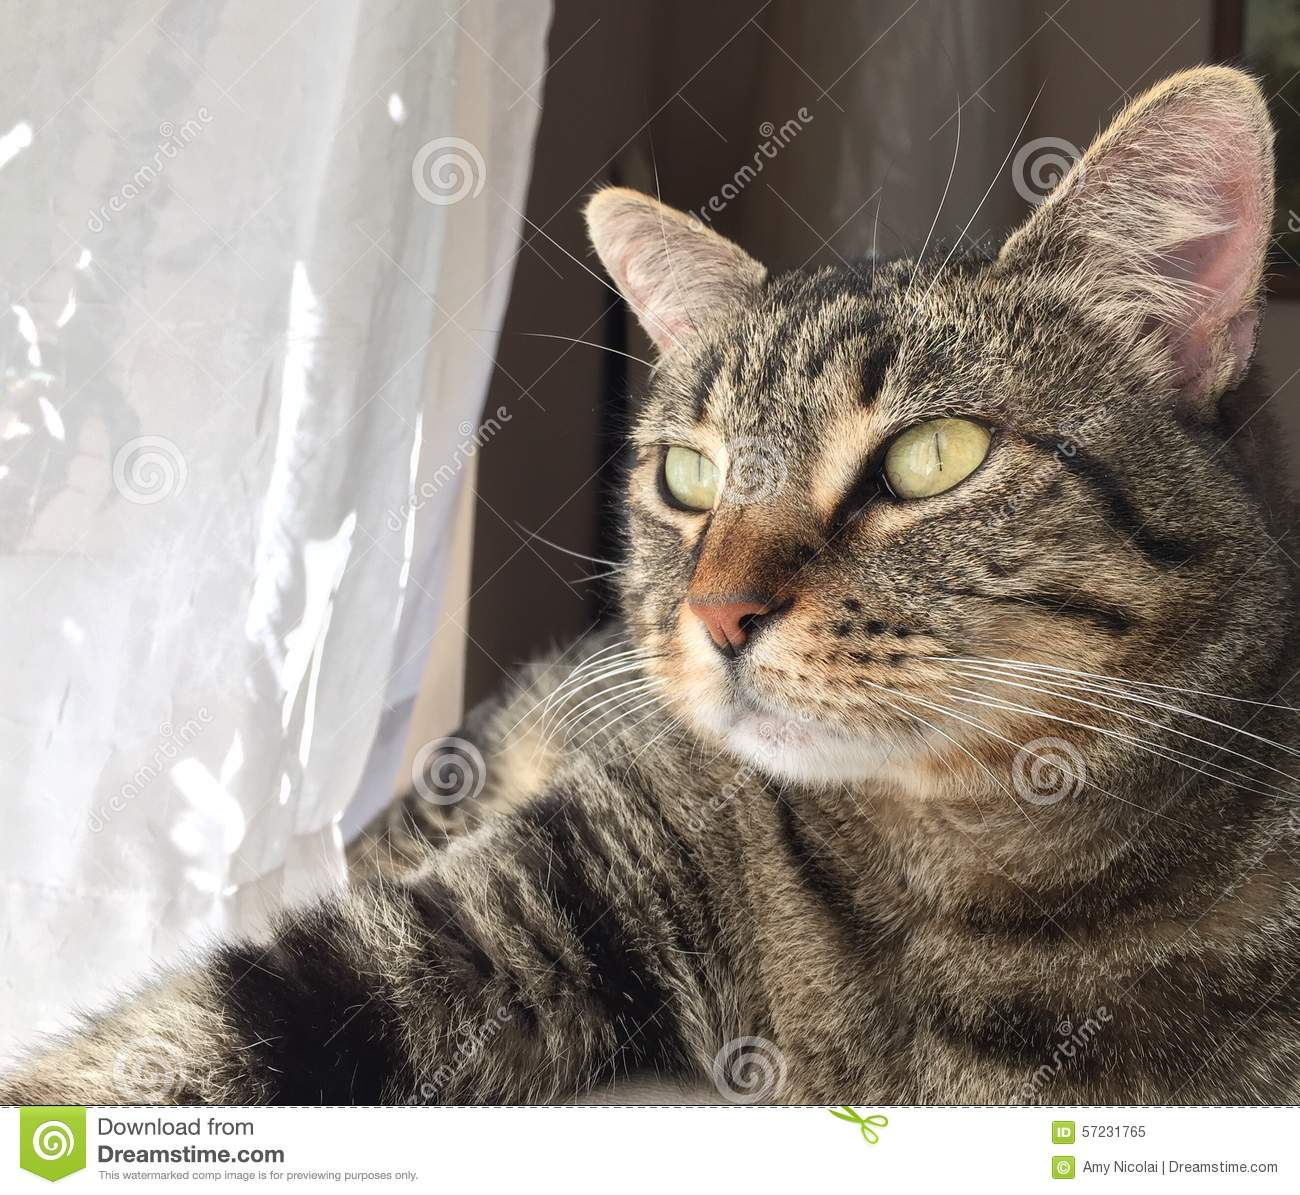 Brown tabby cat gazes into the light